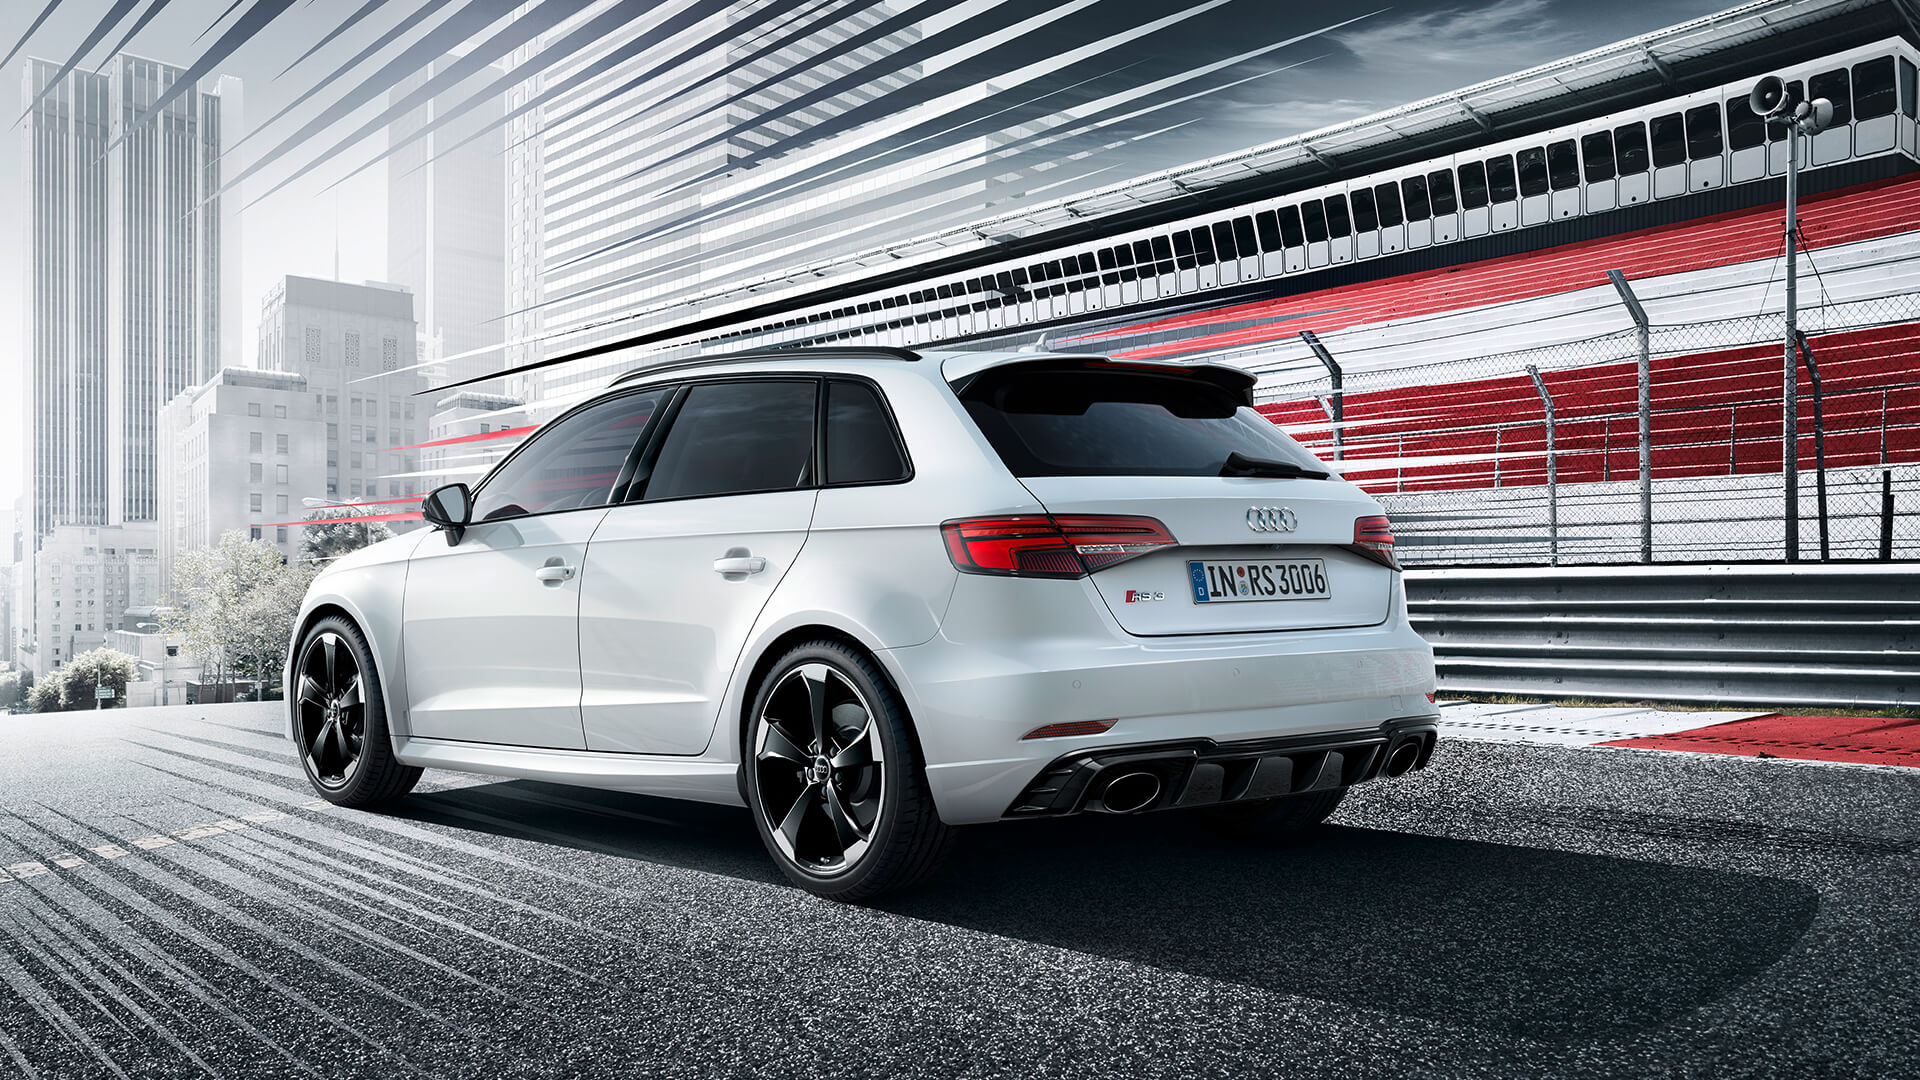 White Audi RS3 sportback from the rear